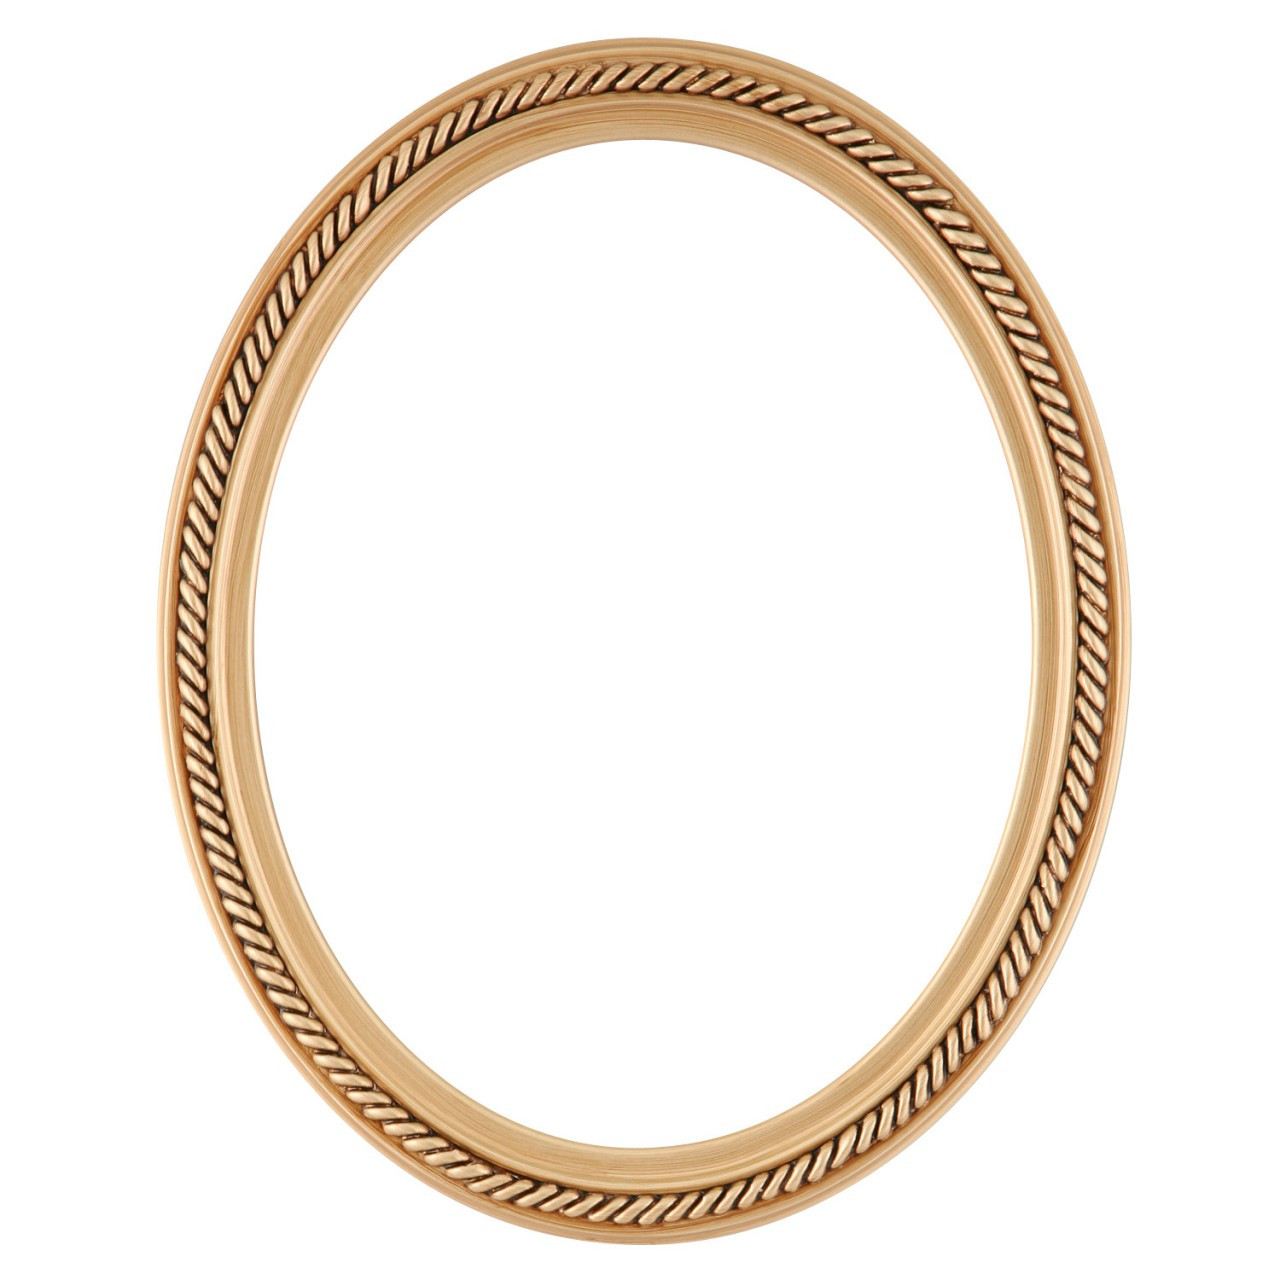 oval frame in gold paint finish braided rope decals on